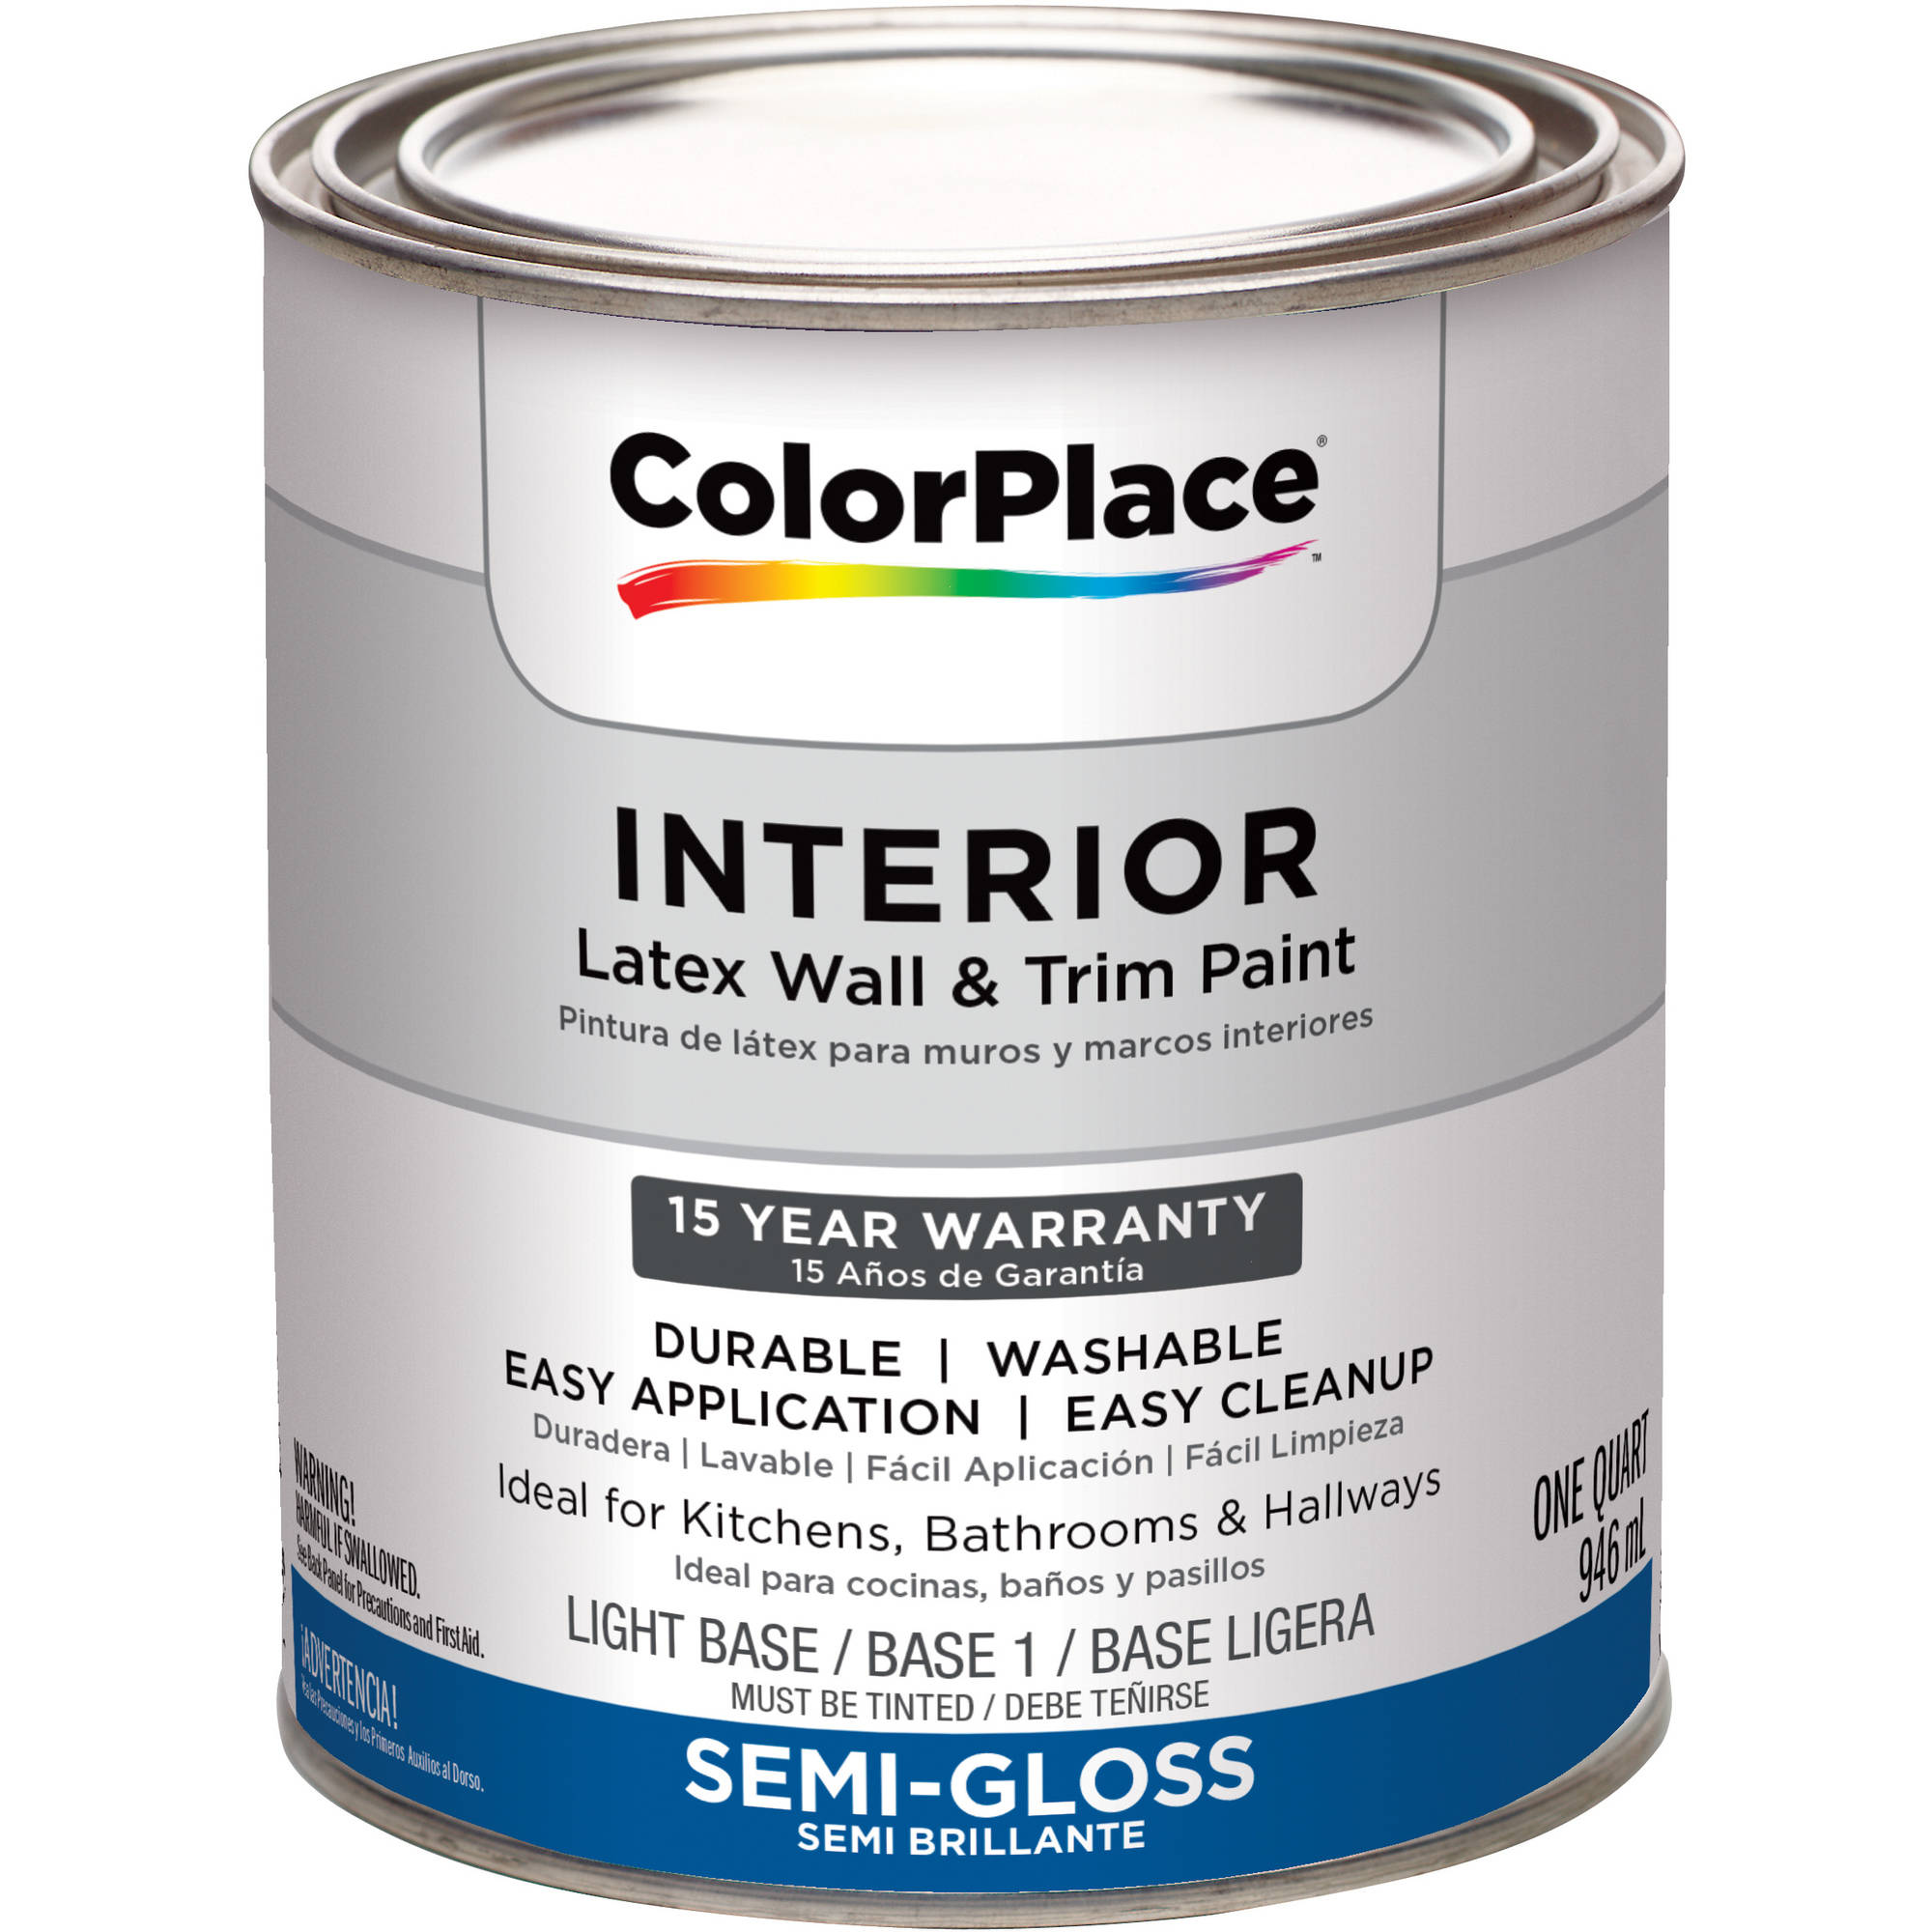 Colorplace Interior Semi-Gloss Light Base Paint, 1 Qt - Walmart.com